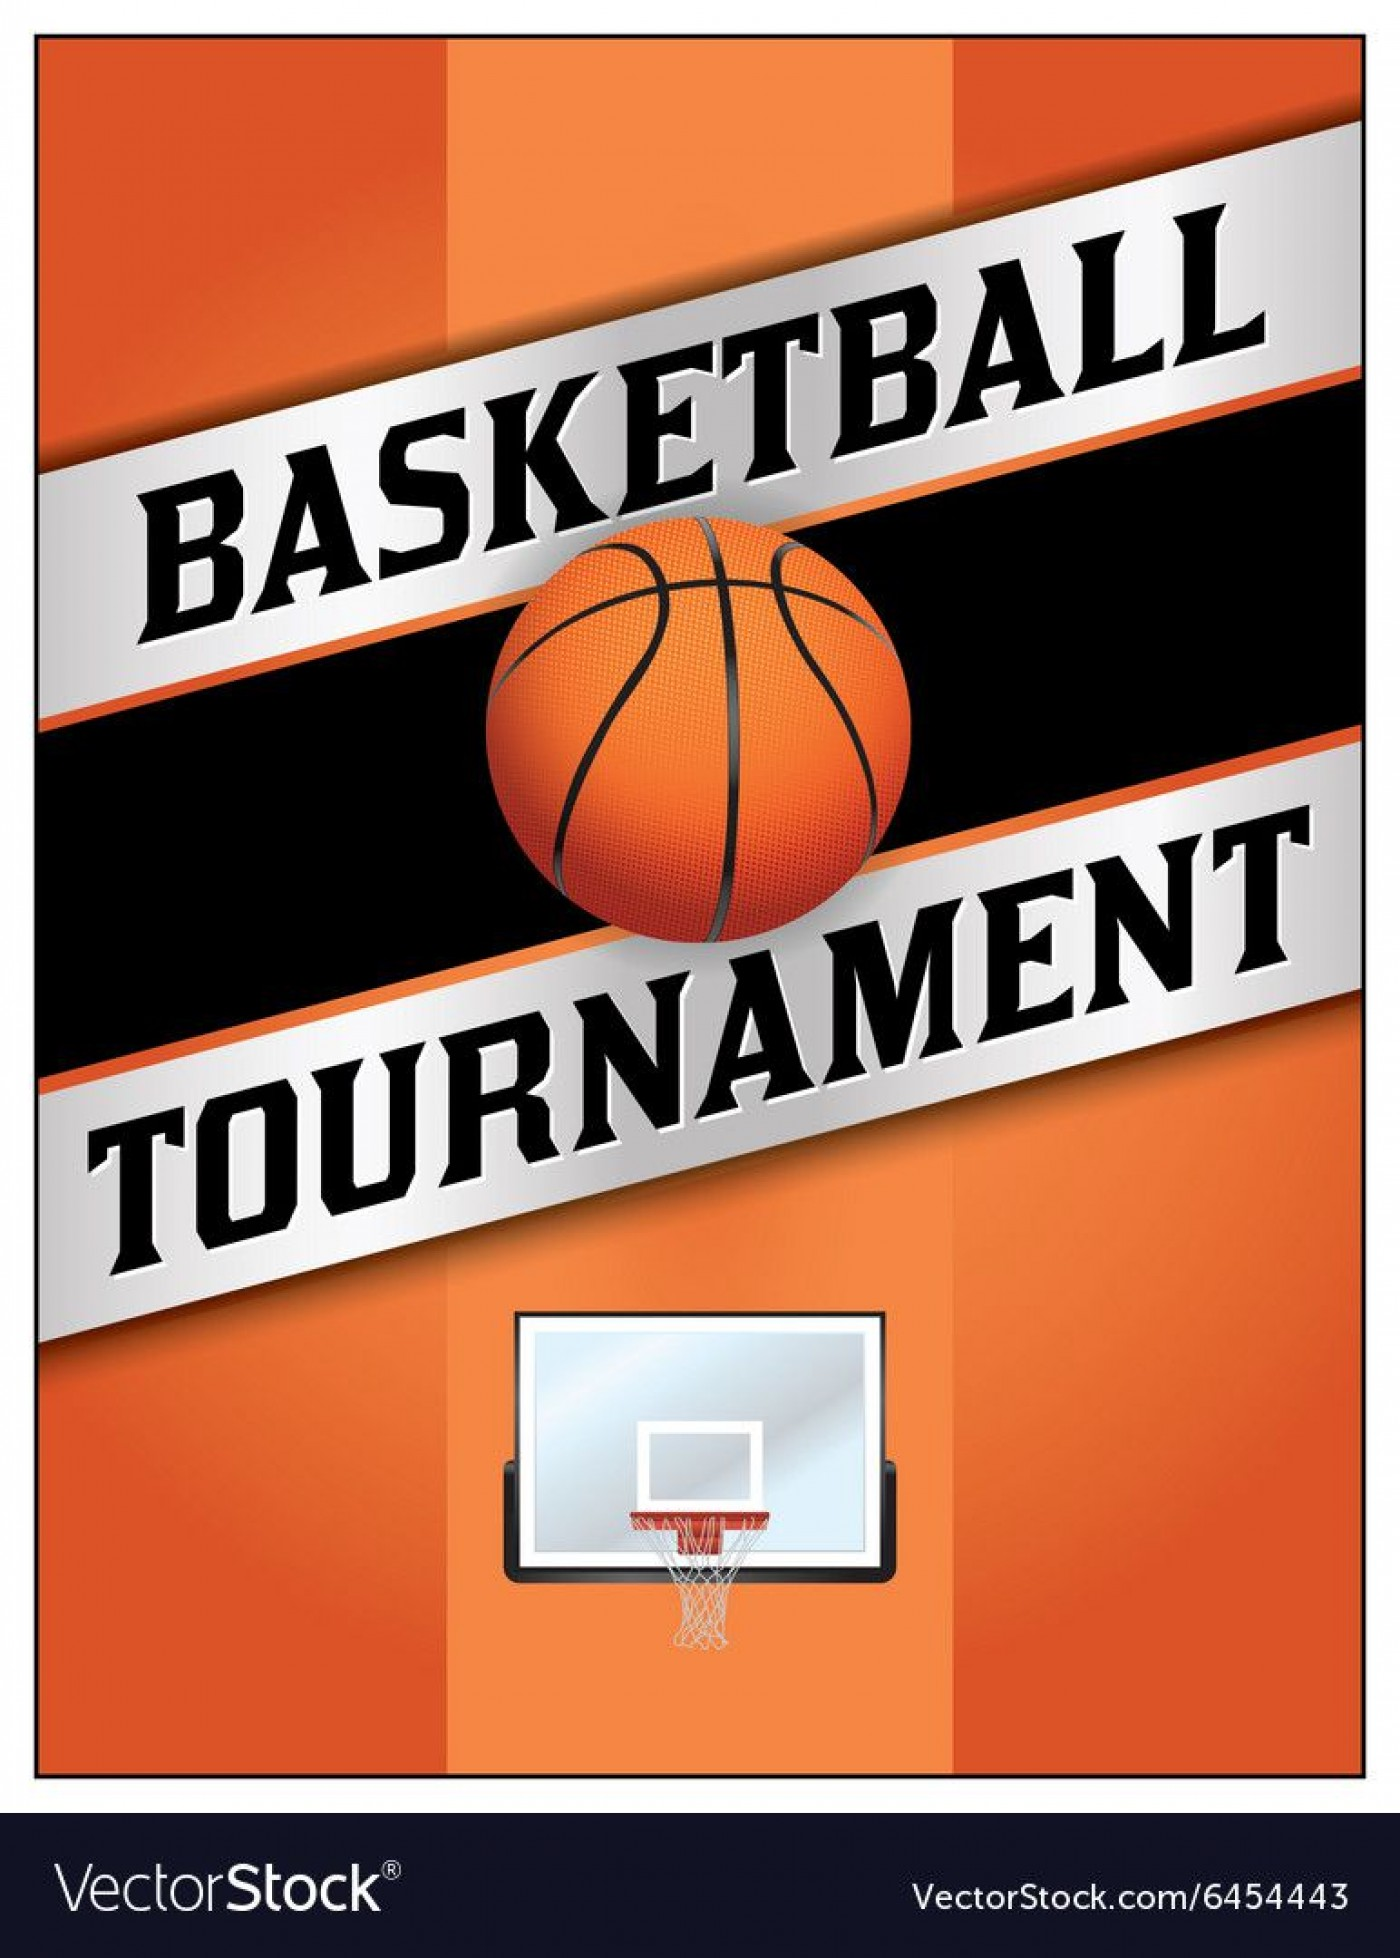 004 Top Basketball Tournament Flyer Template Highest Quality  3 On Free1400